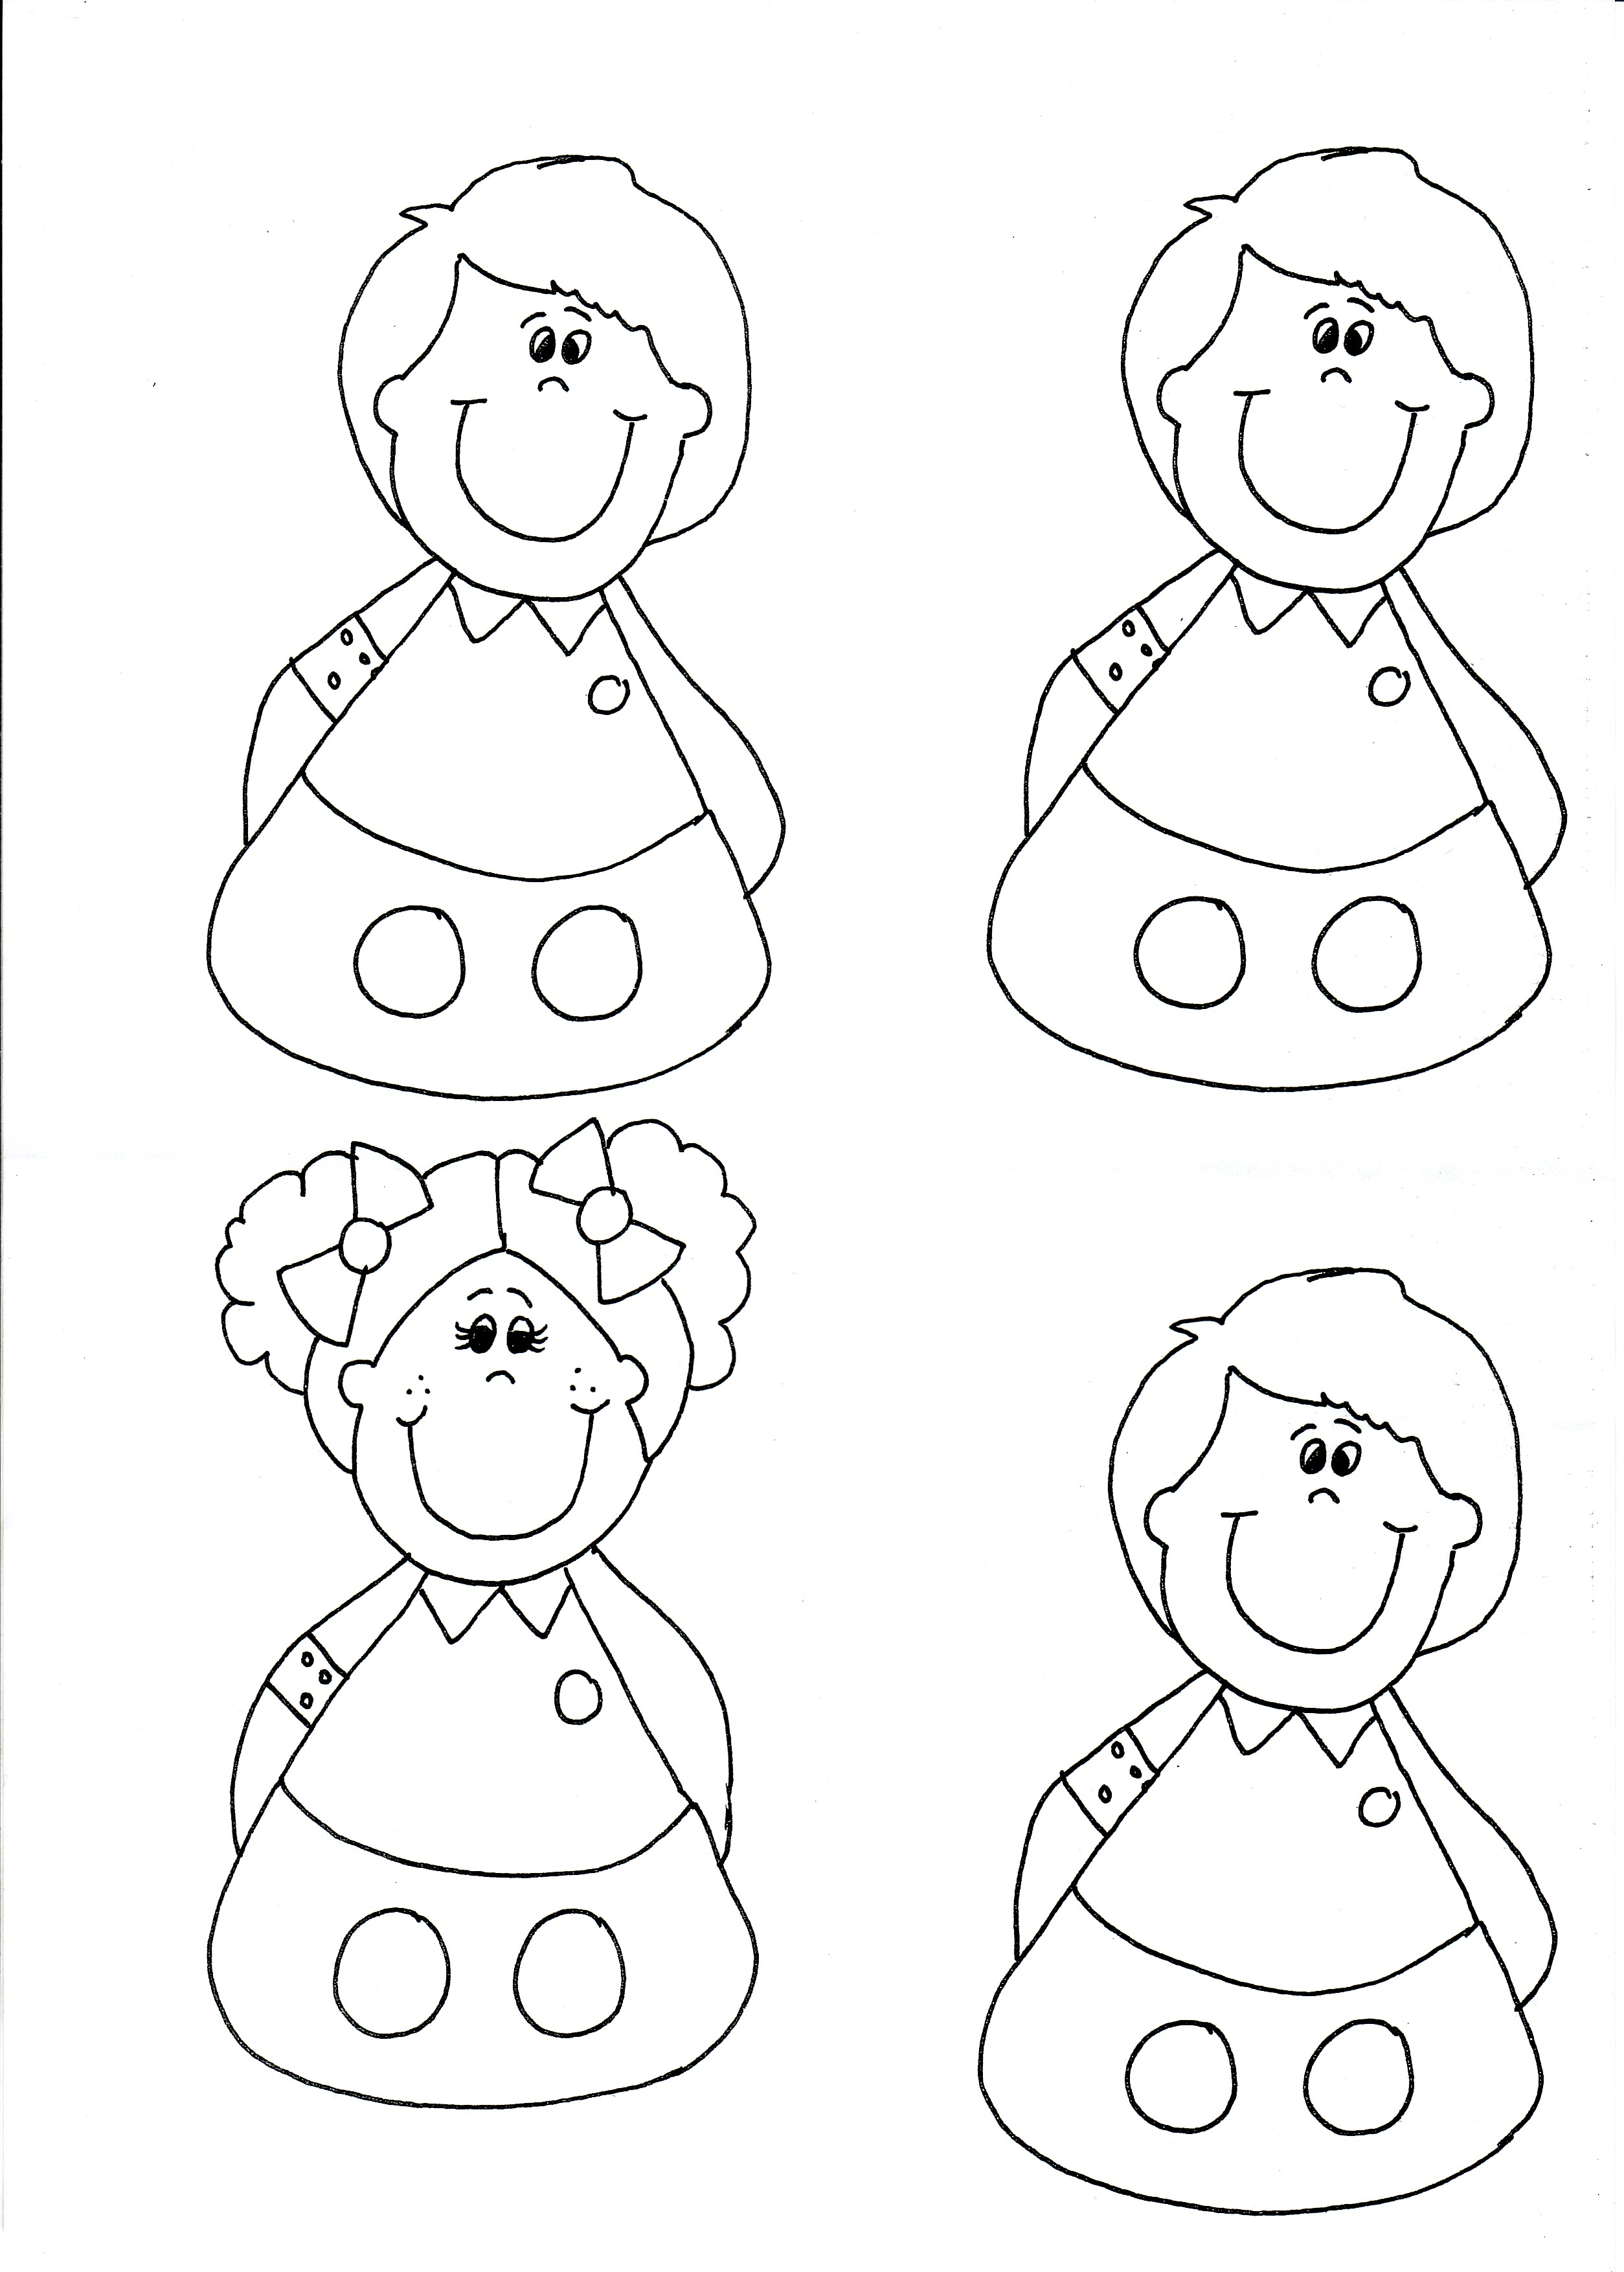 8 best images of people puppet printable template finger for Person template preschool